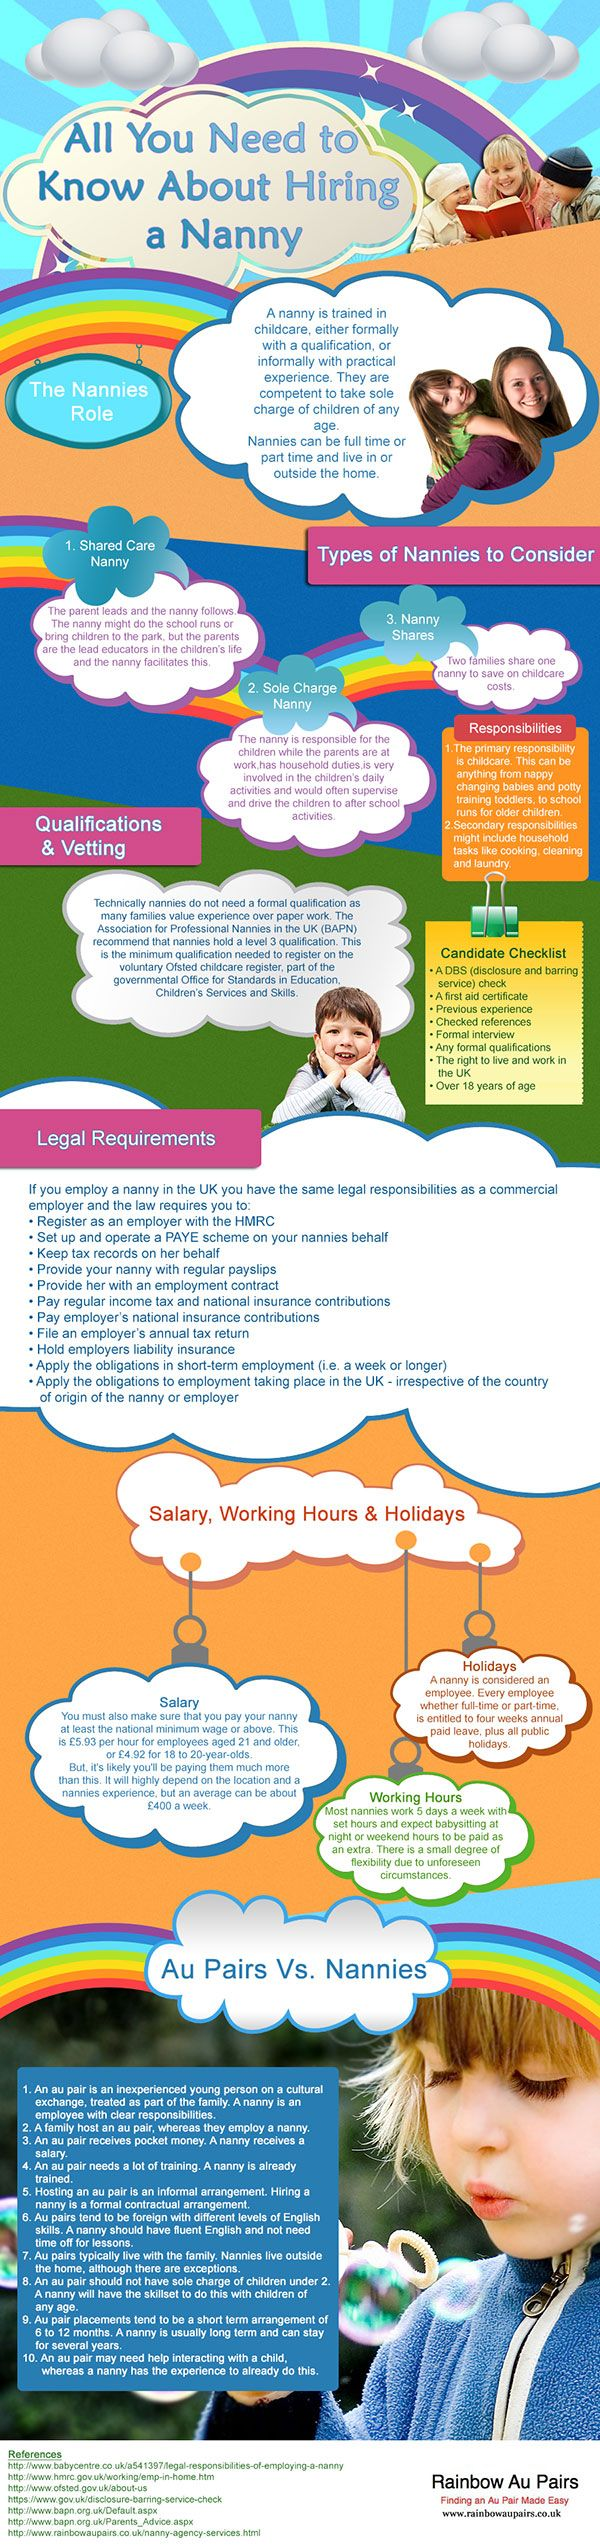 Are you looking for nannies to hire